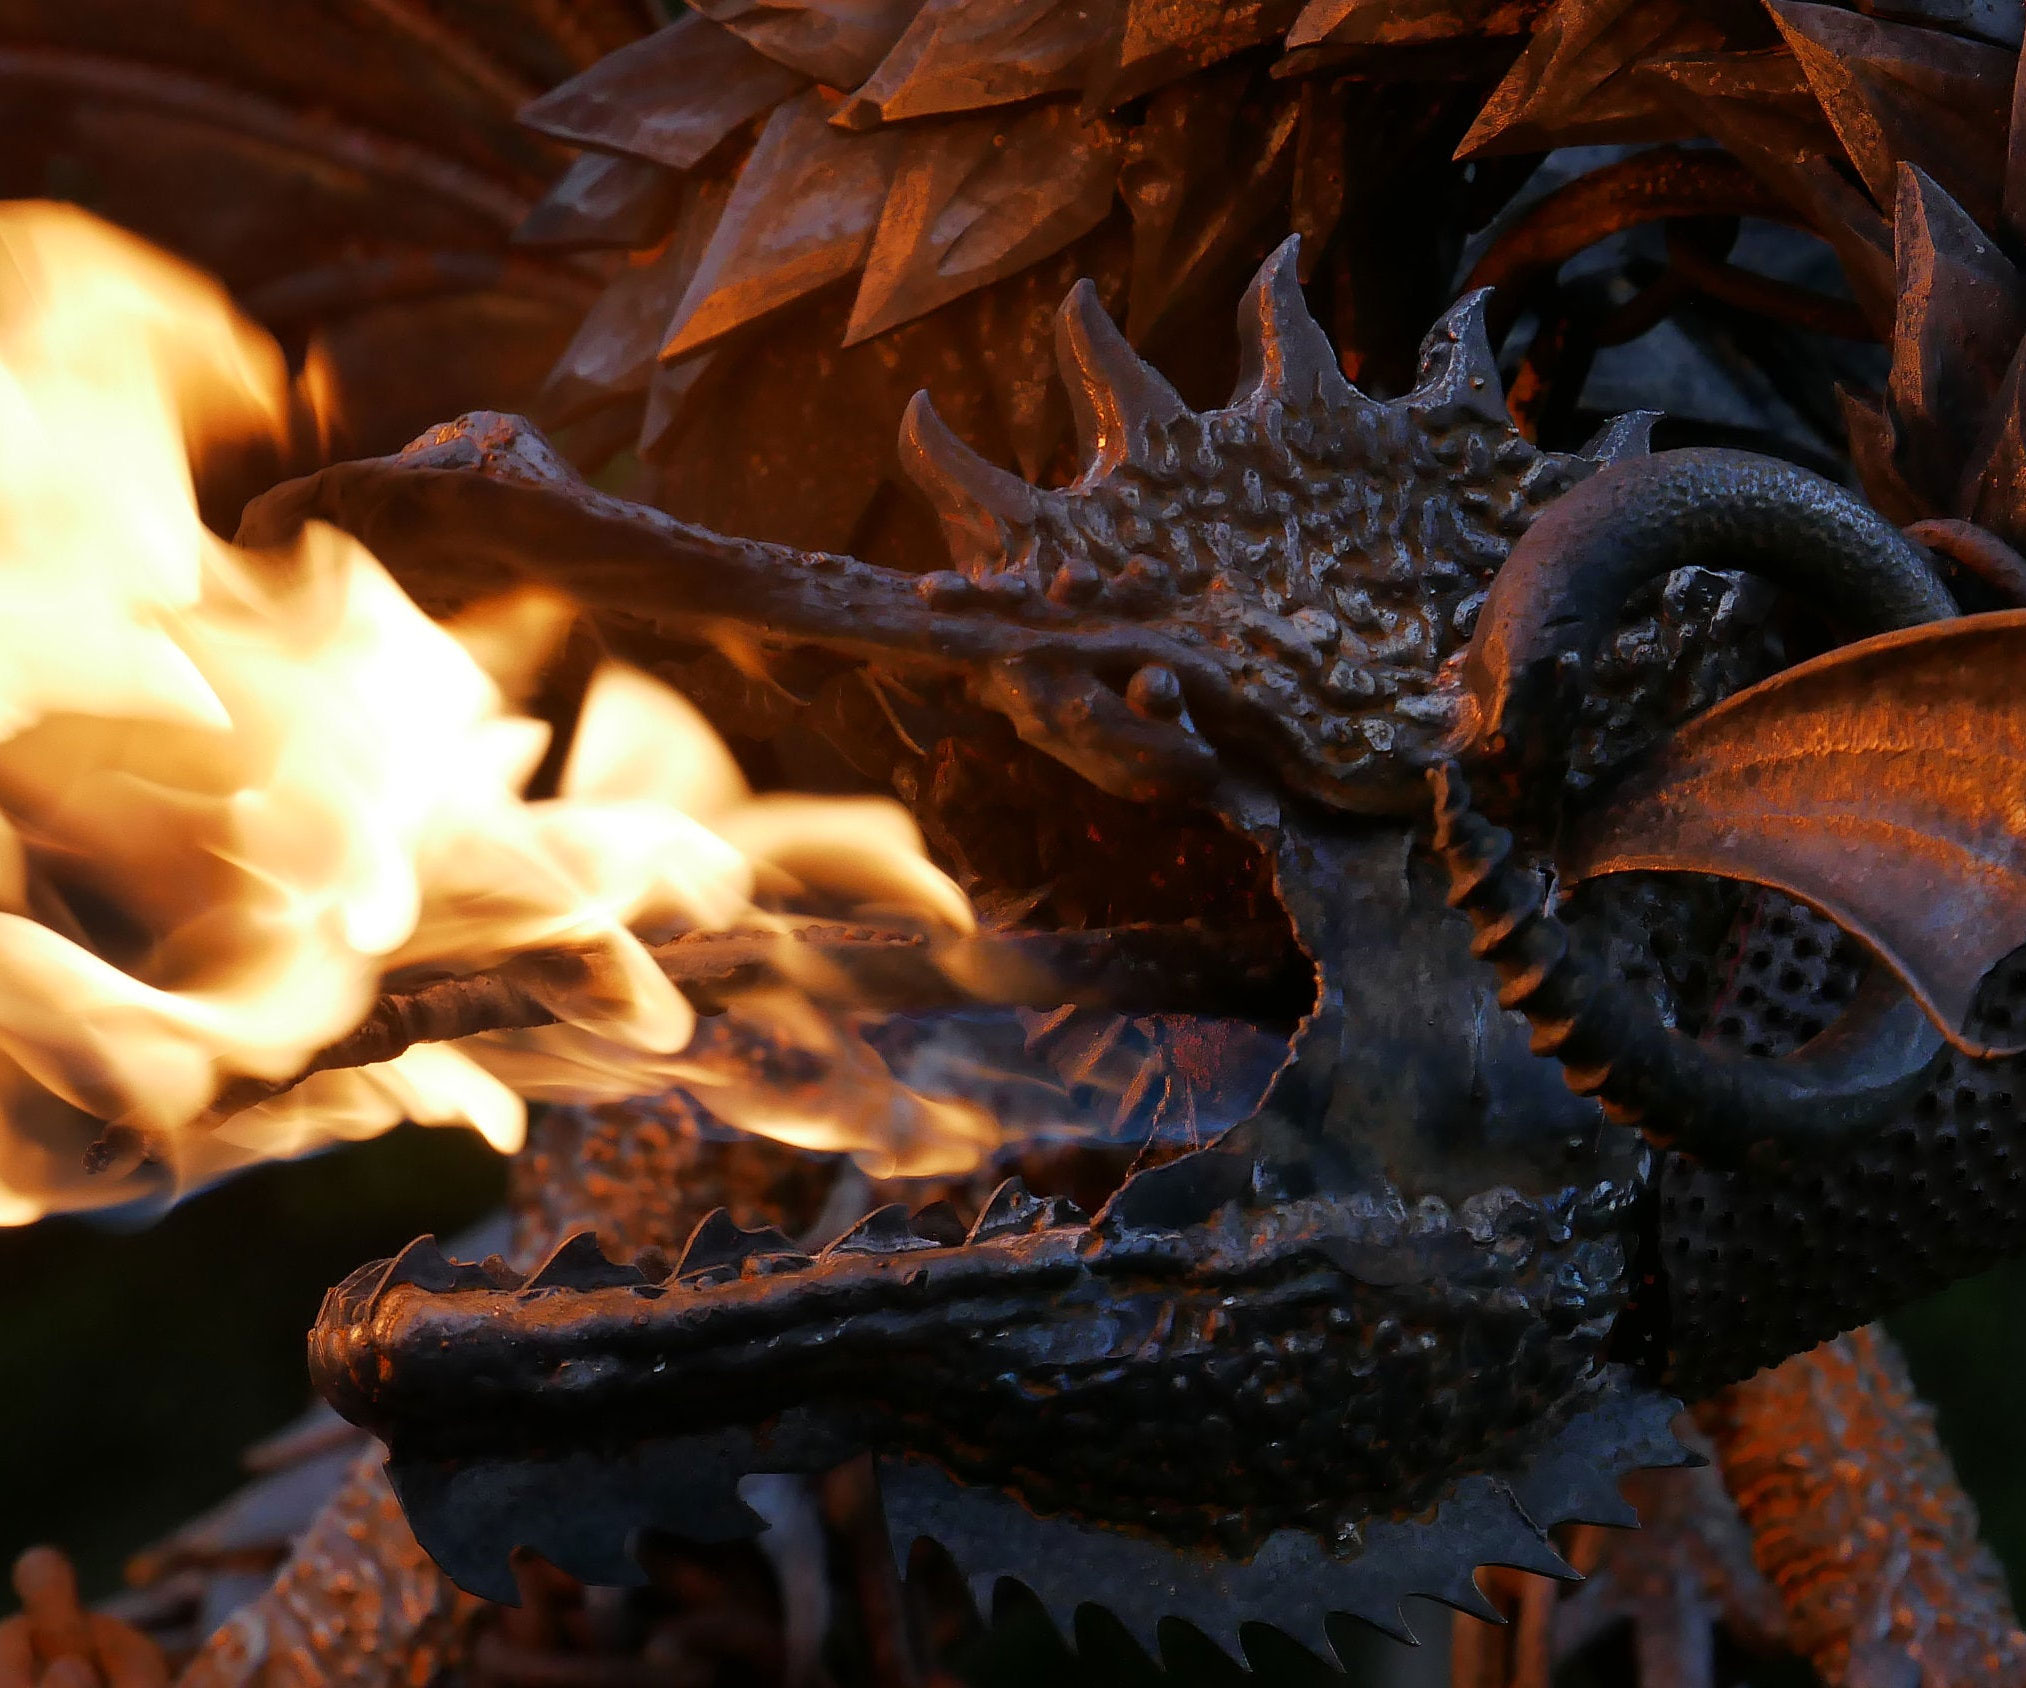 Fire Breathing Dragon Sculpture 1